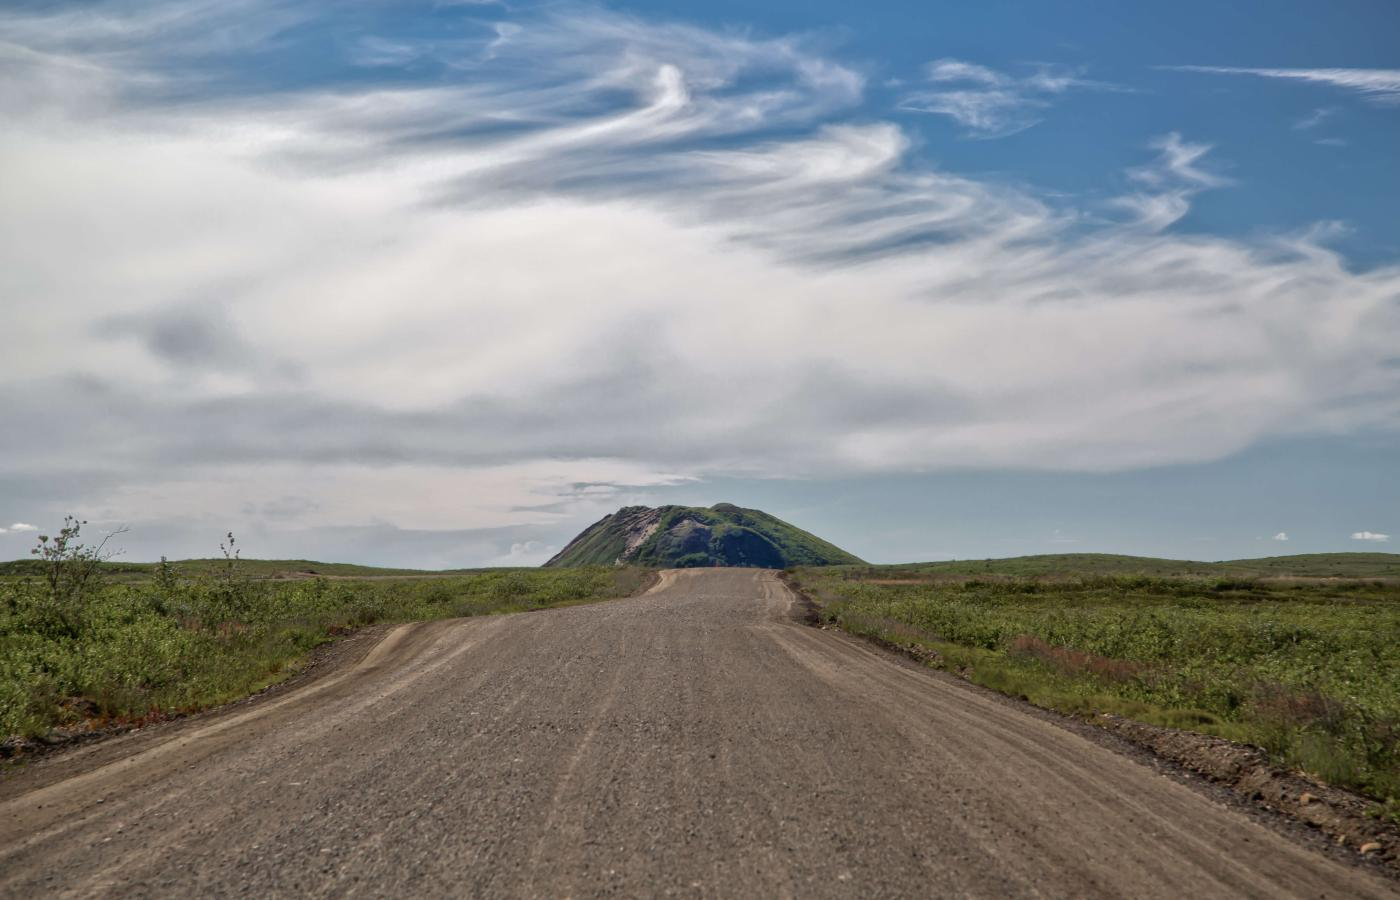 A pingo on the Inuvik-Tuk Highway